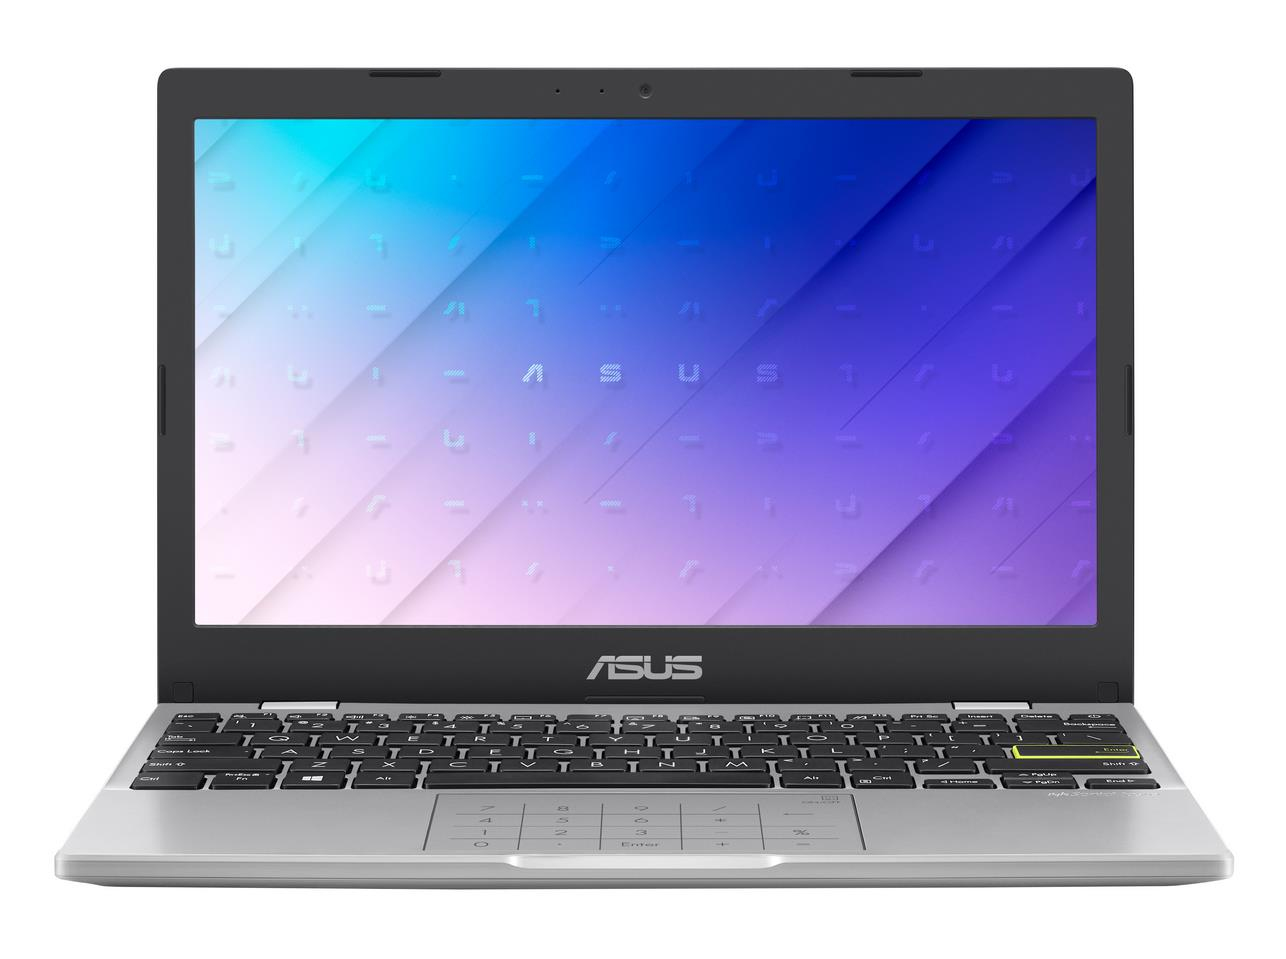 "ASUS E210MA-GJ003TS notebook White 29.5 cm (11.6"""") 1366 x 768 pixels Intel® Celeron® N 4 GB DDR4-SDRAM 64 GB eMMC Wi-Fi 5 (802.11ac) Windows 10 Home S"